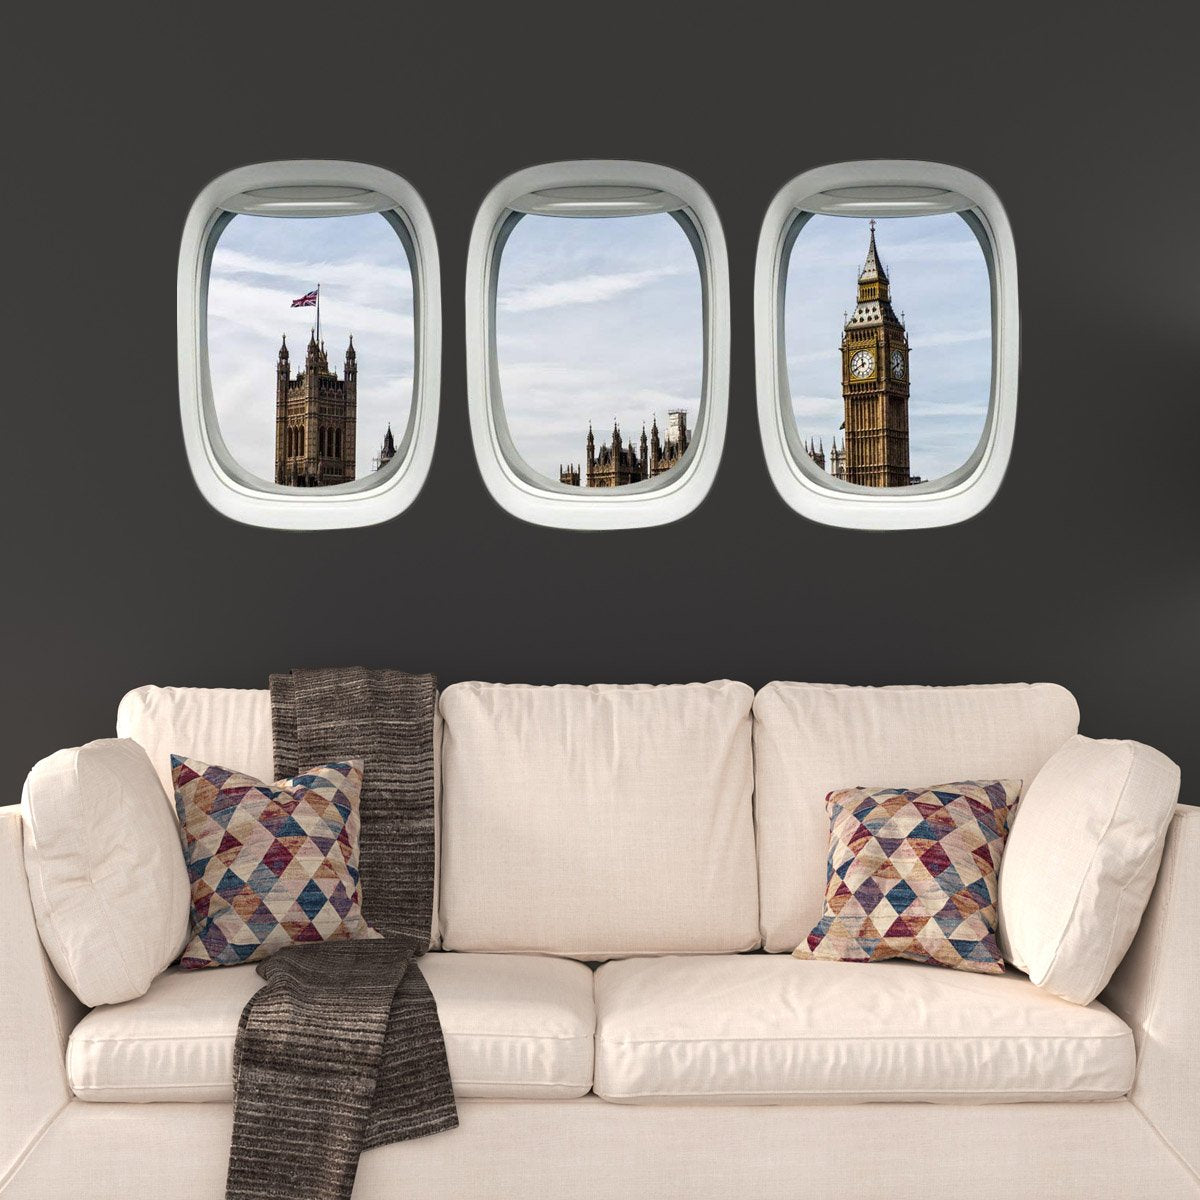 VWAQ Big Ben Wall Airplane Window Decals Kids Room Aviation Decor - PPW18 - VWAQ Vinyl Wall Art Quotes and Prints